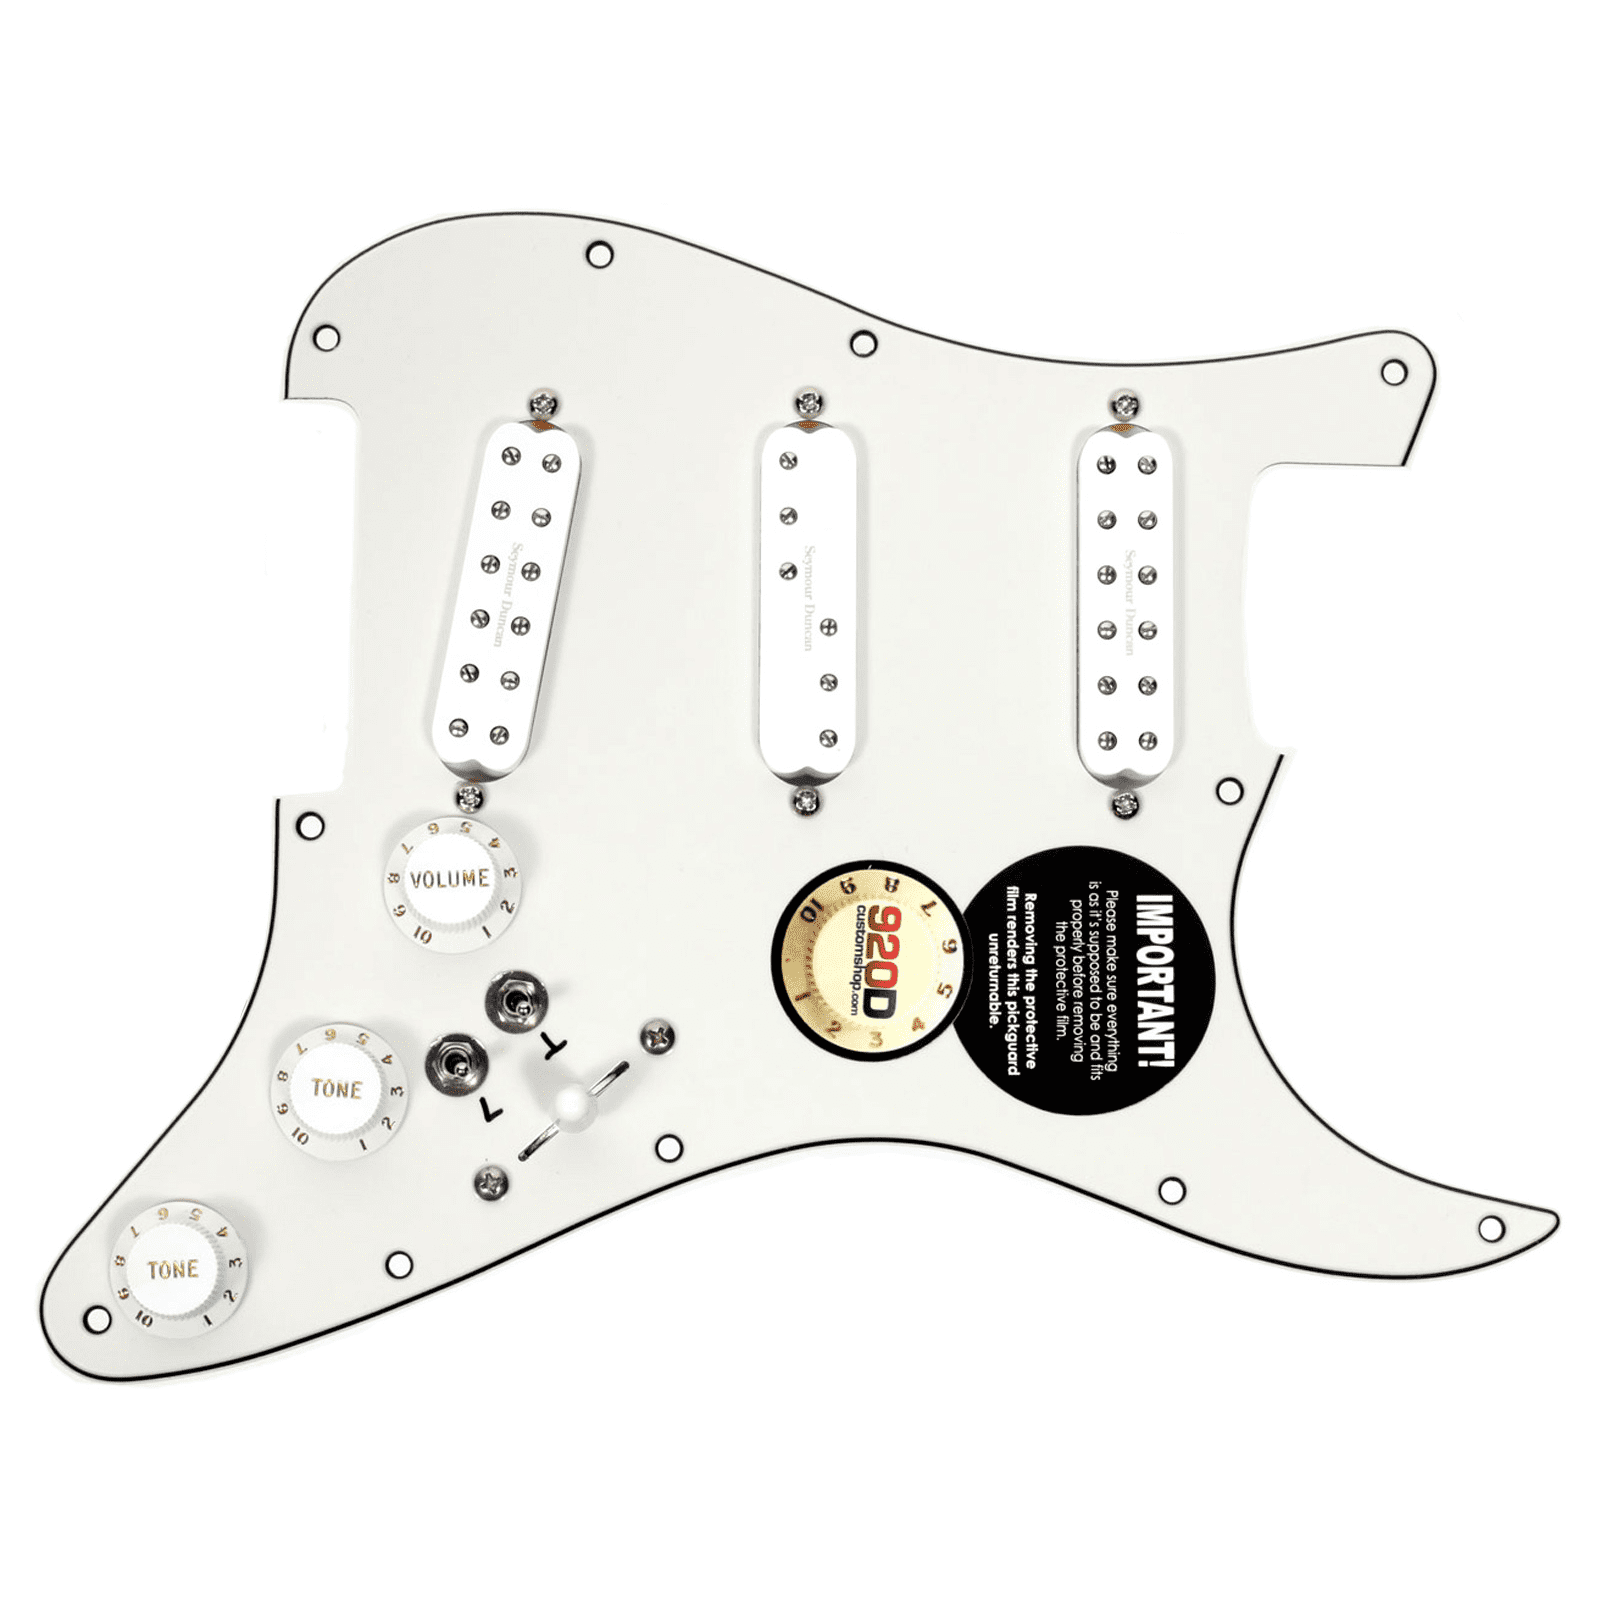 Duncan SJBJ   SDBR   SL59 Loaded Pickguard Everything Axe W  2 Toggles PA WH by